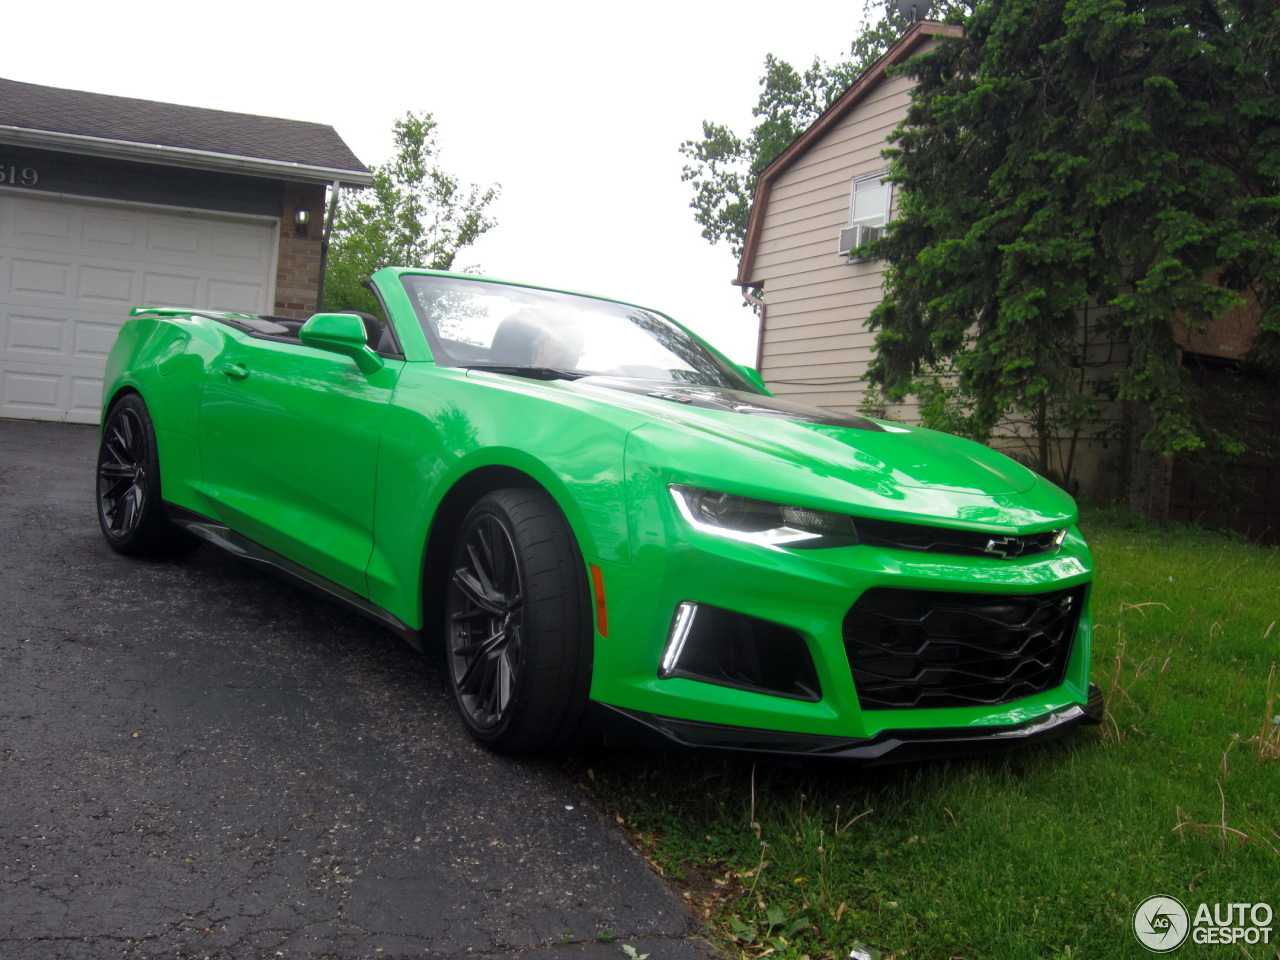 2017 Camaro Colors >> Chevrolet Camaro ZL1 Convertible 2017 - 27 May 2017